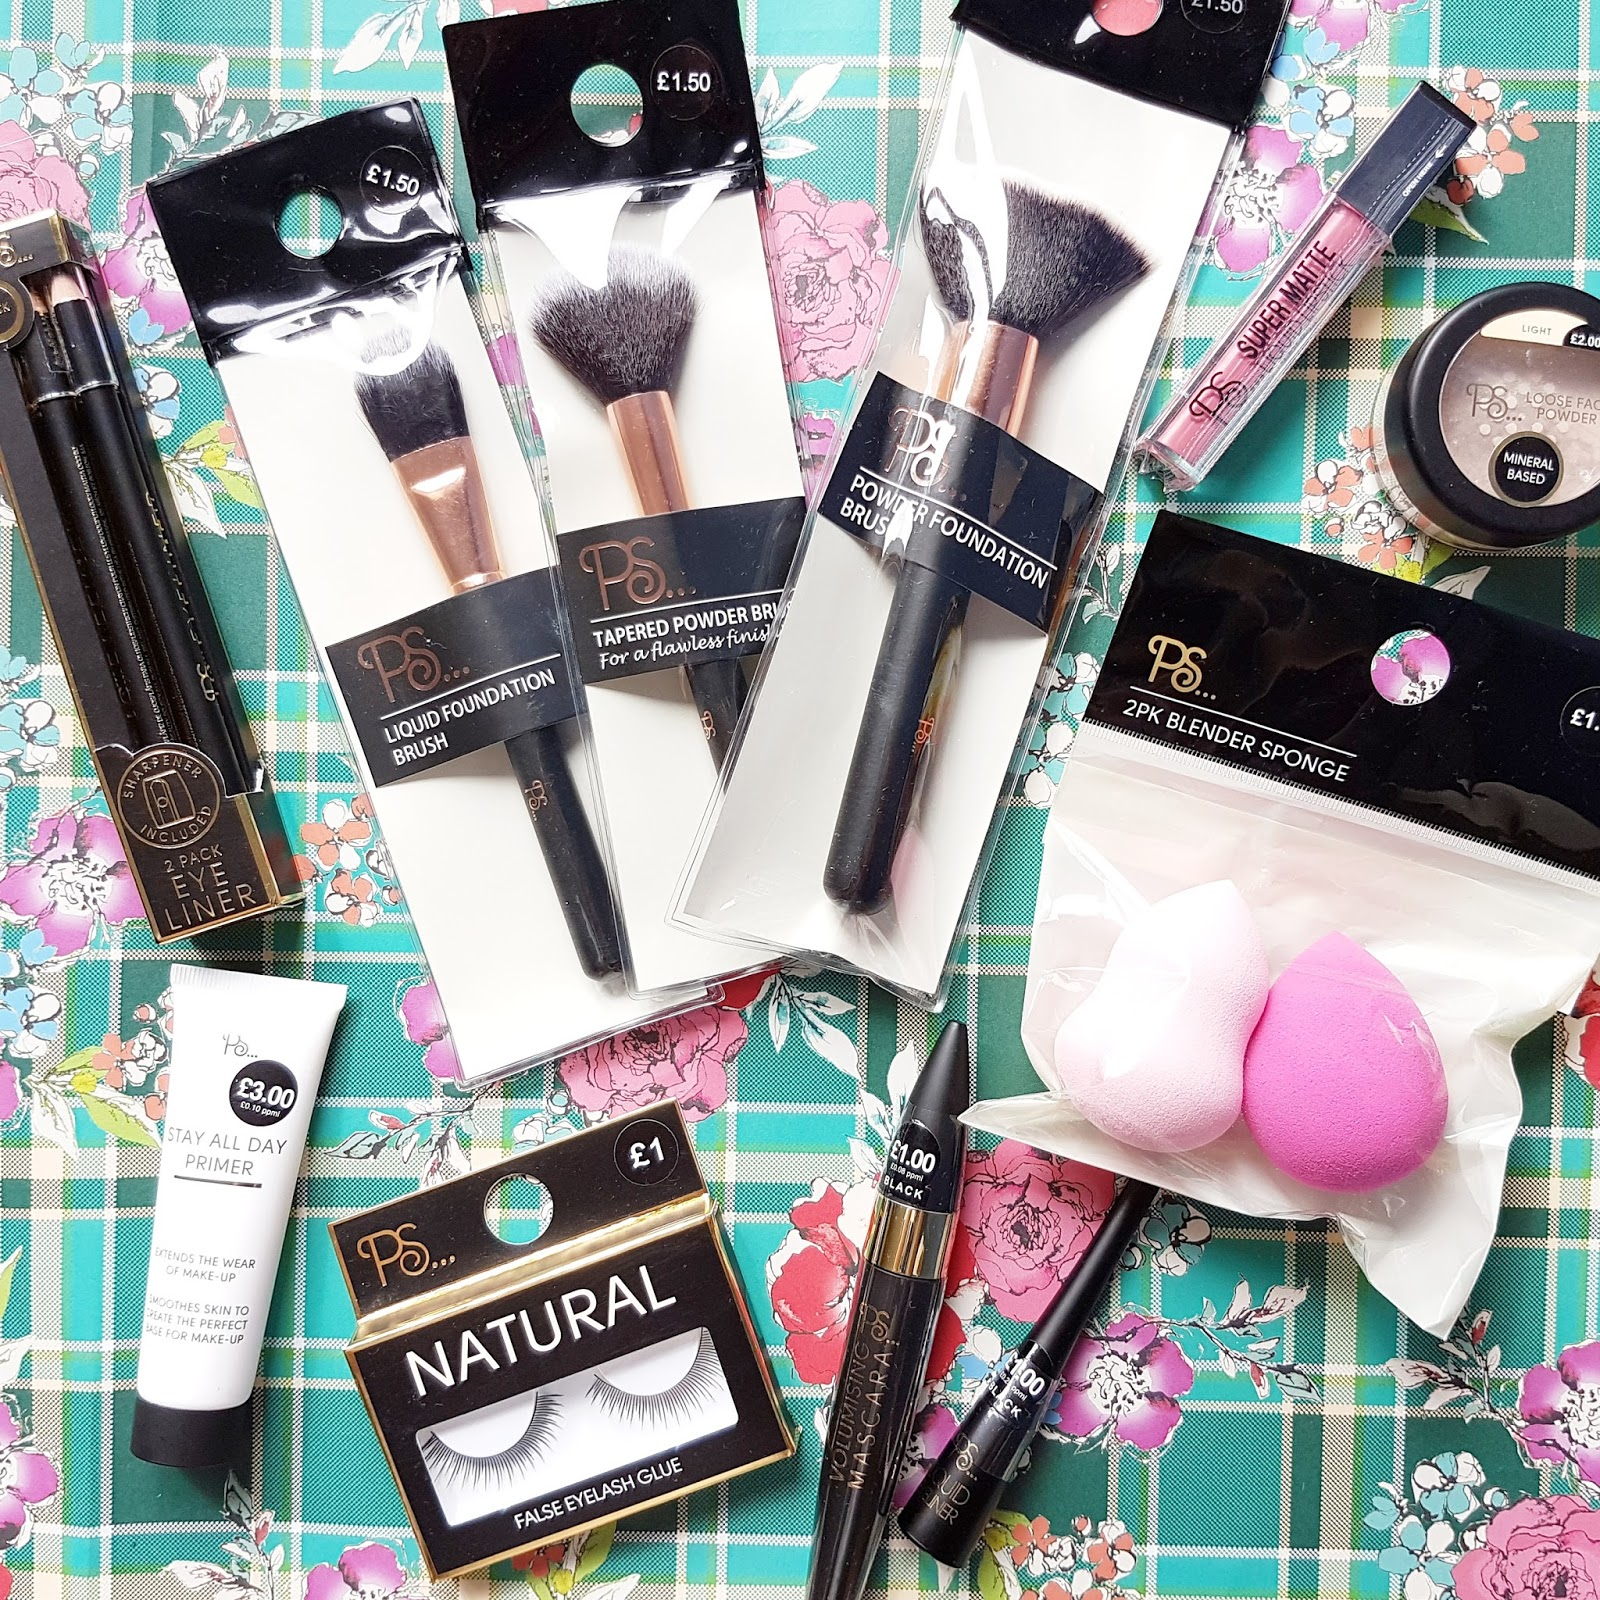 5168272c88d Let's start with Primark's range of makeup tools and applicators. I was  really disappointed to find out that my local store doesn't stock their  range of ...